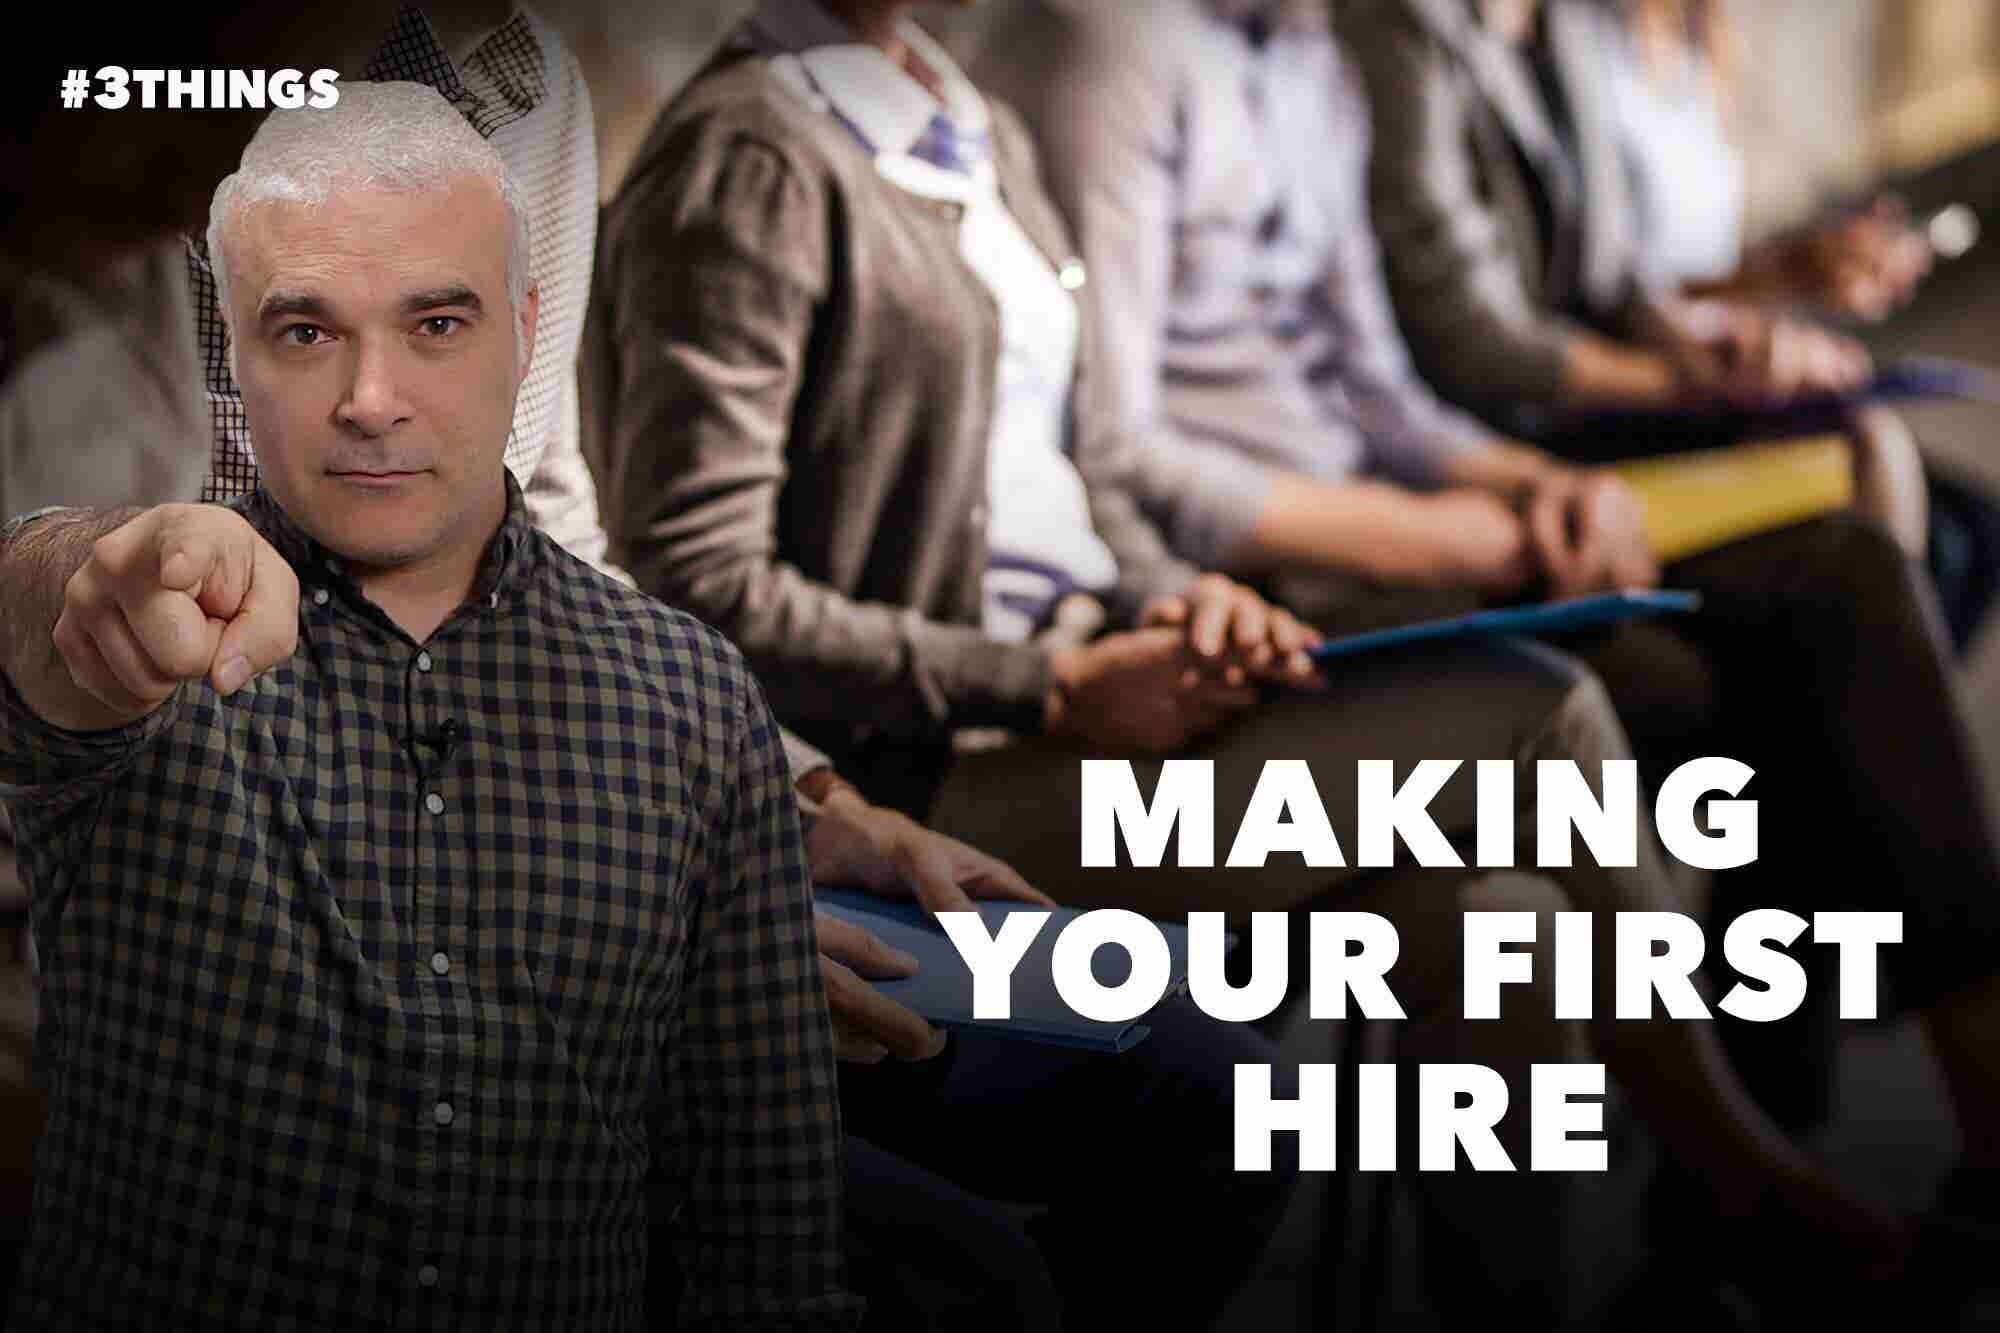 3 Things to Look for Before You Hire Your First Employee (60-Second Video)